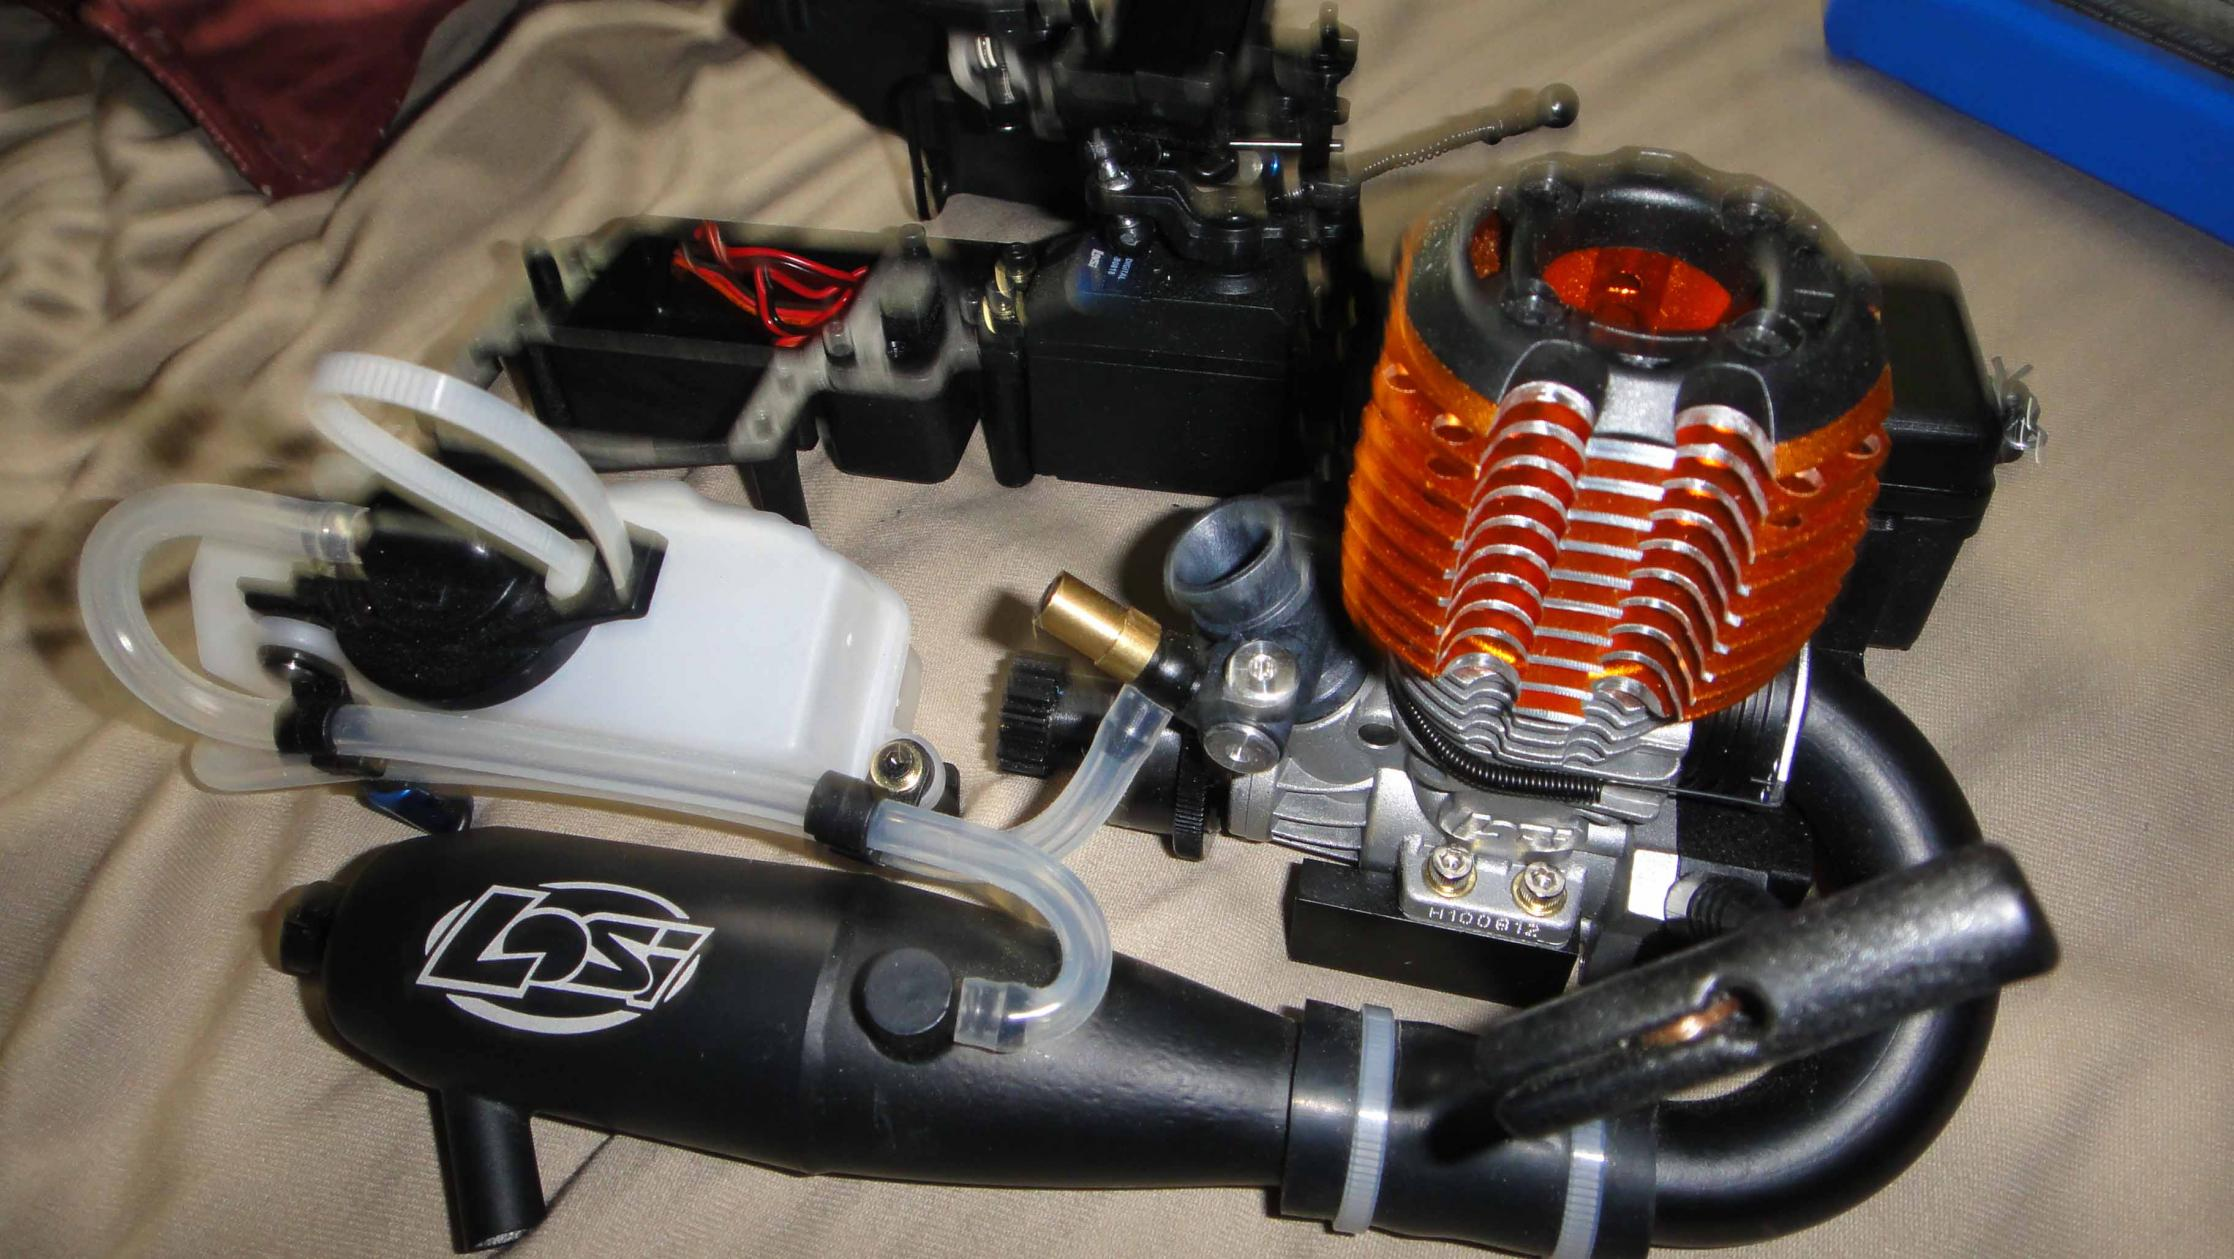 Losi Rc Cars For Sale In Knoxville Tn